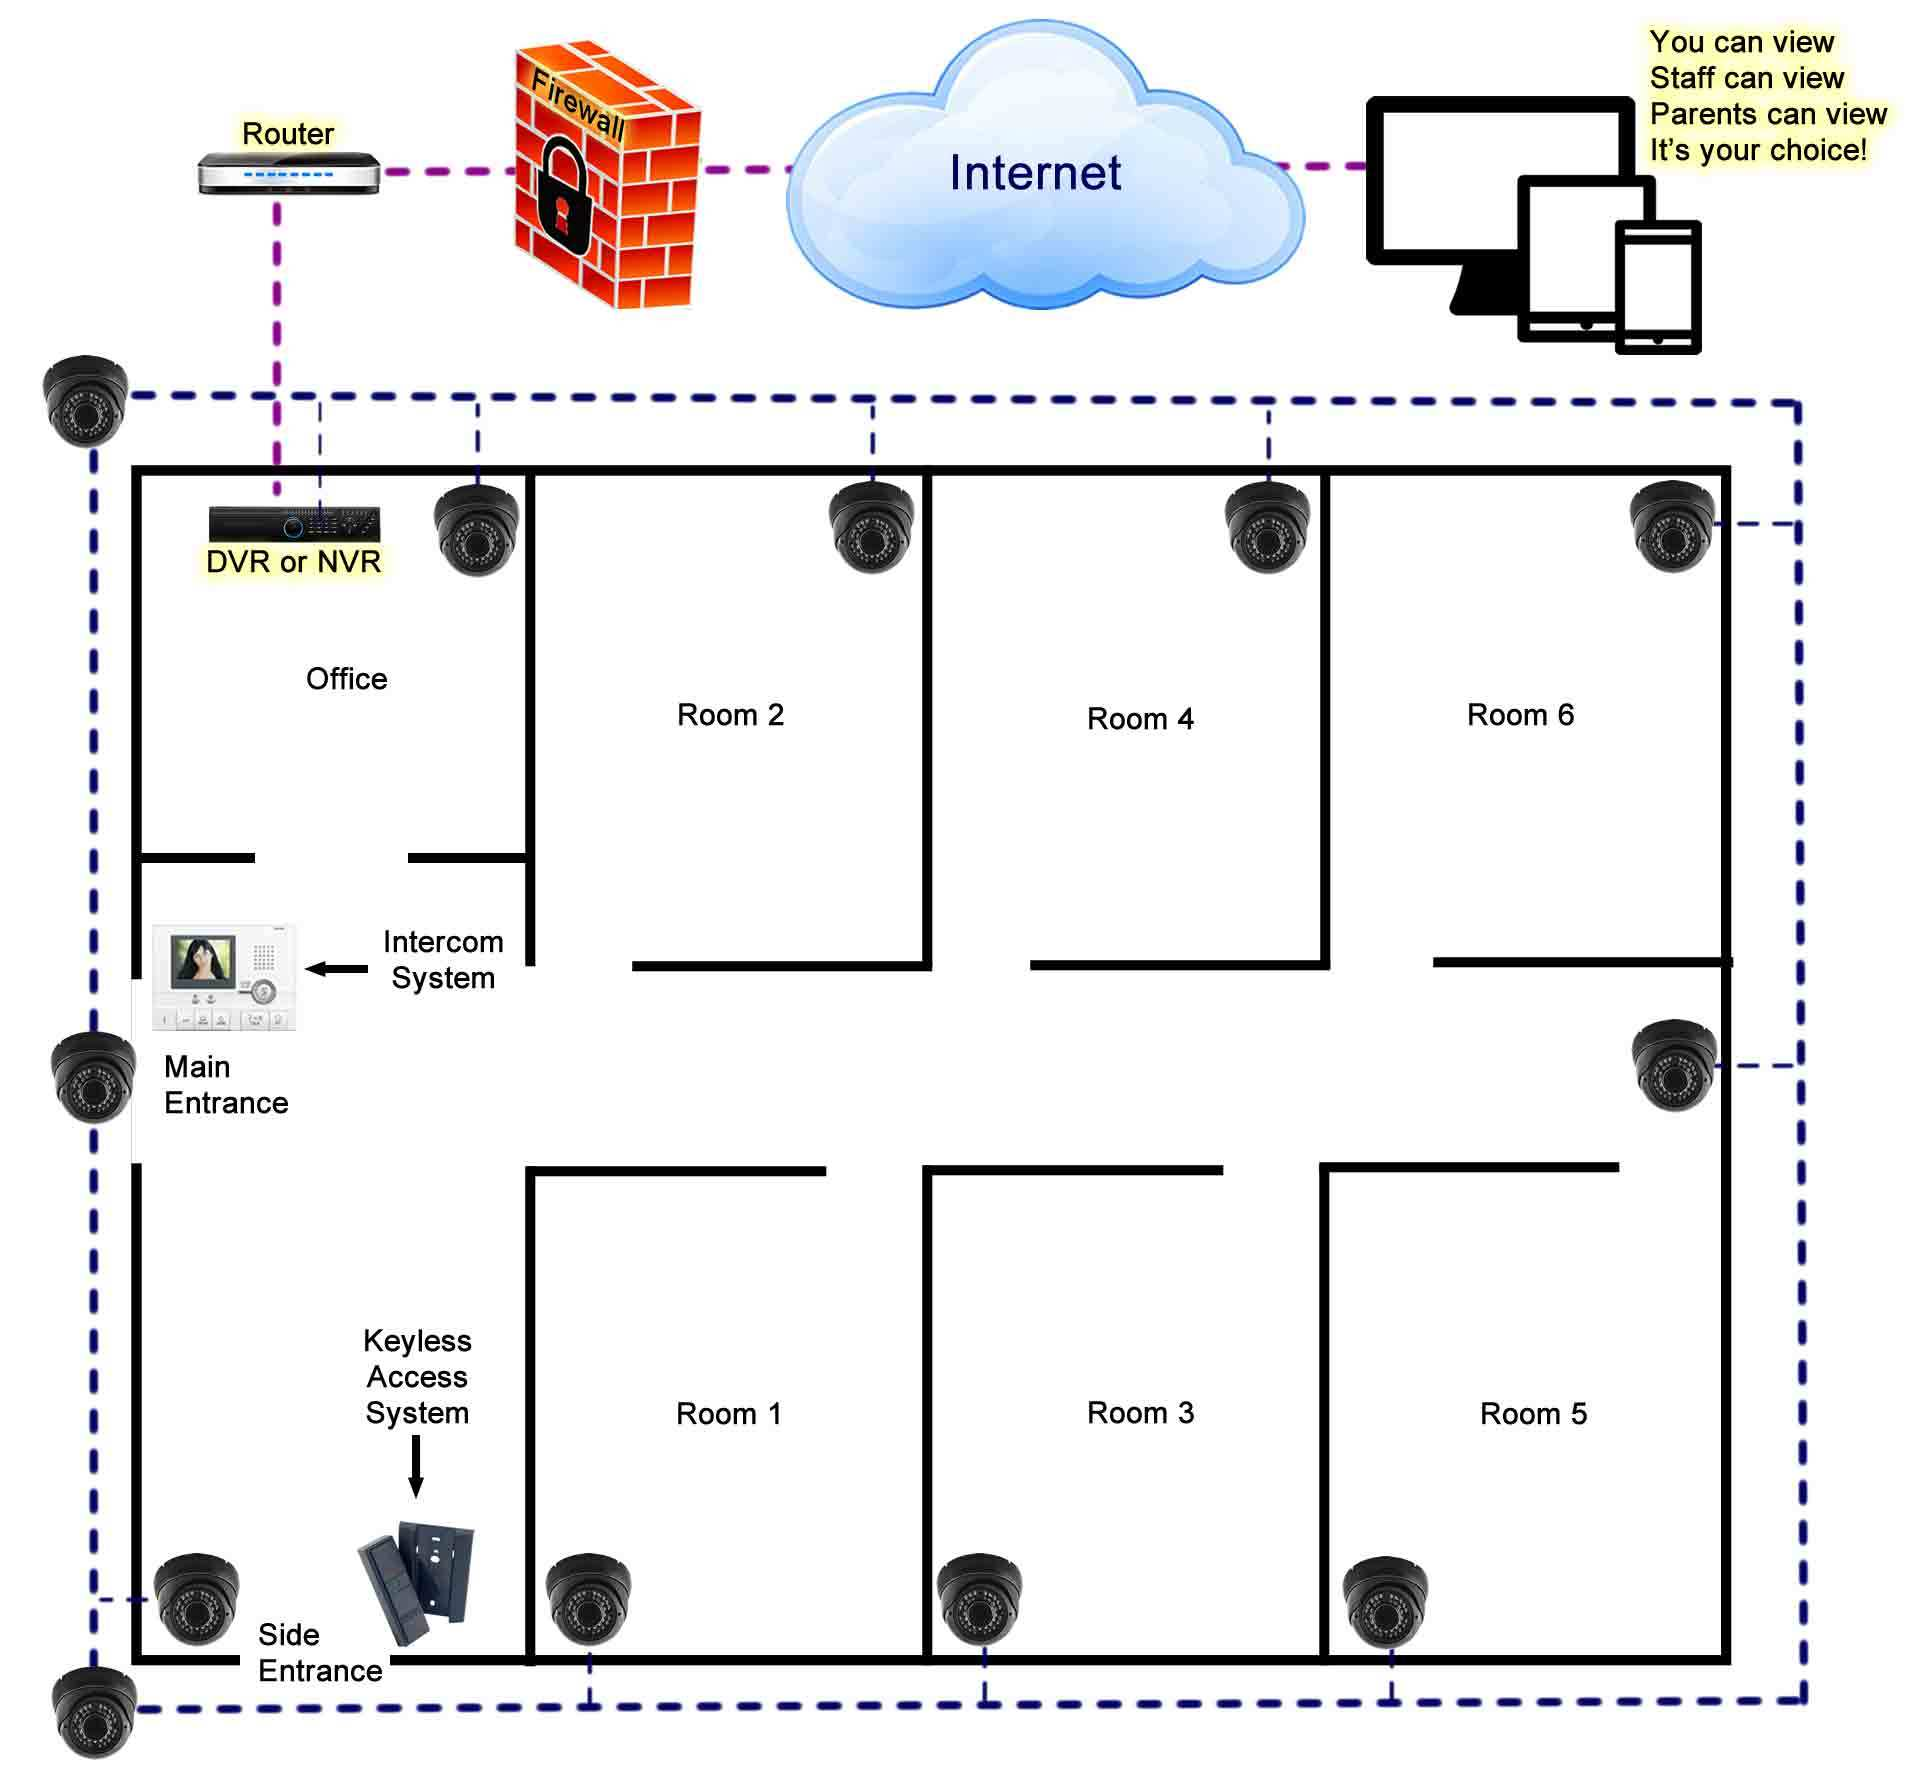 4 Daycare Diagram Cams Access Intercom autodata wiring diagrams chomikuj efcaviation com bpt intercom wiring diagram at gsmx.co